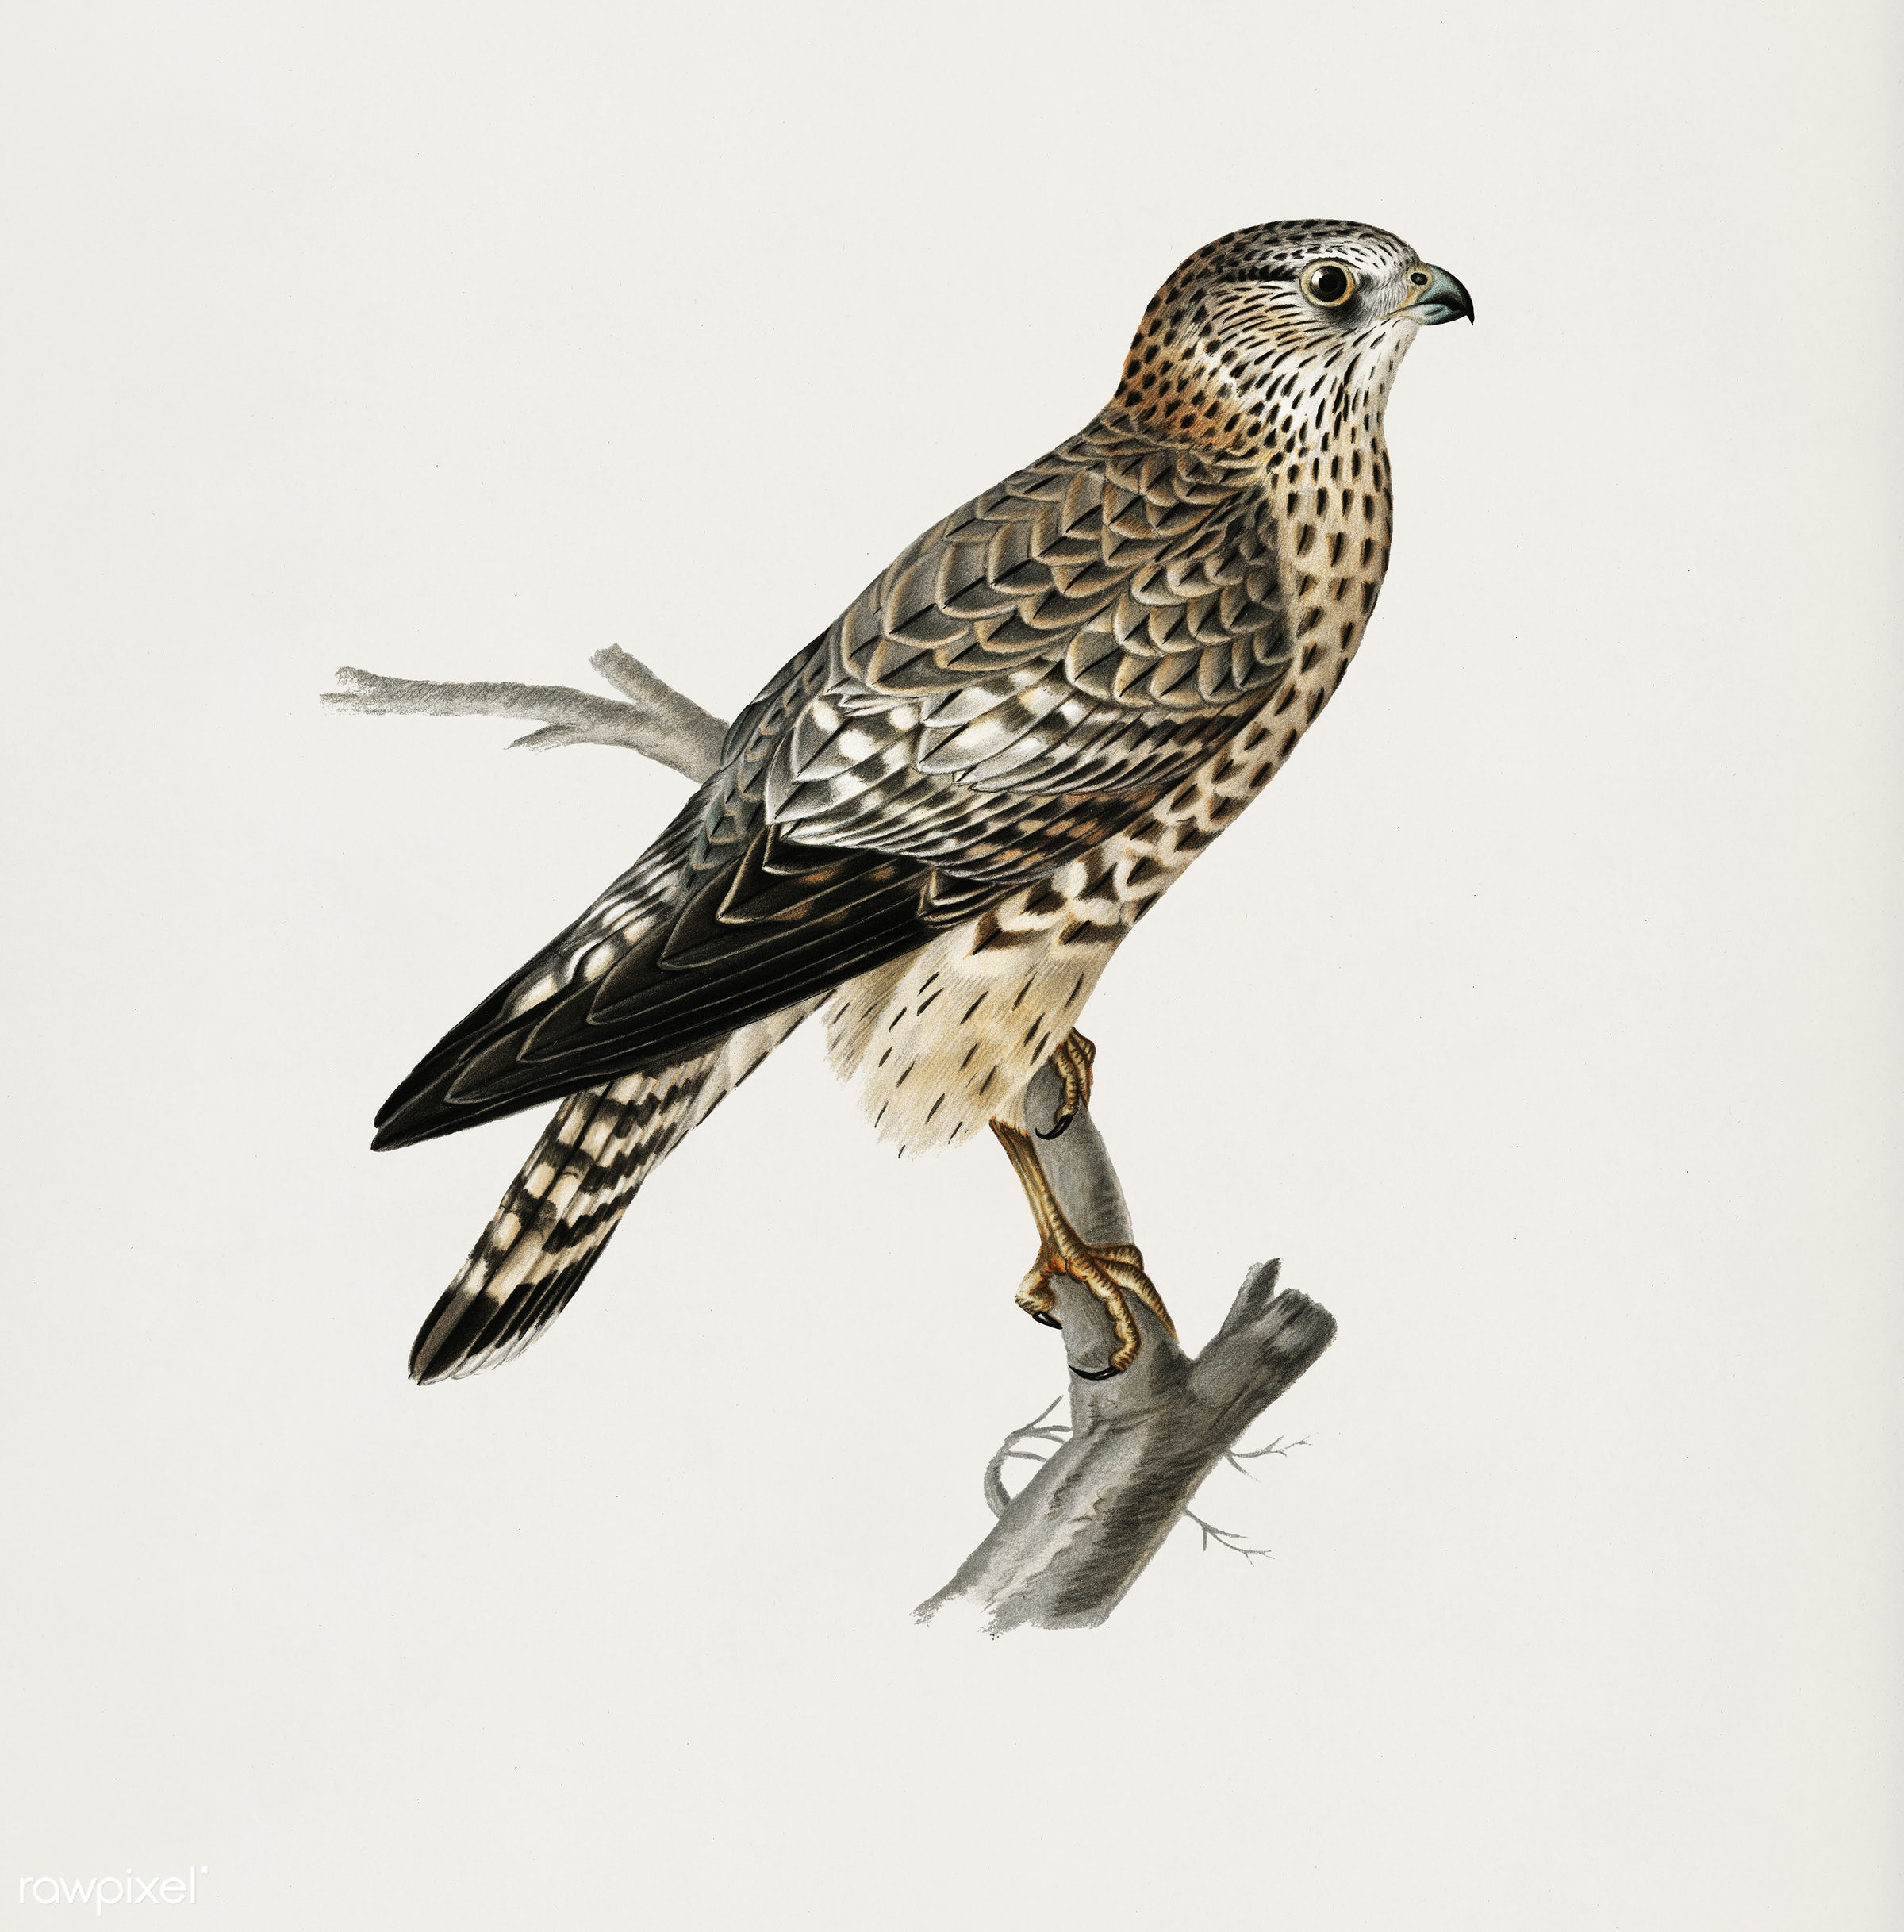 Merlin female (Falco aesalon) illustrated by the von Wright brothers. Digitally enhanced from our own 1929 folio version of...